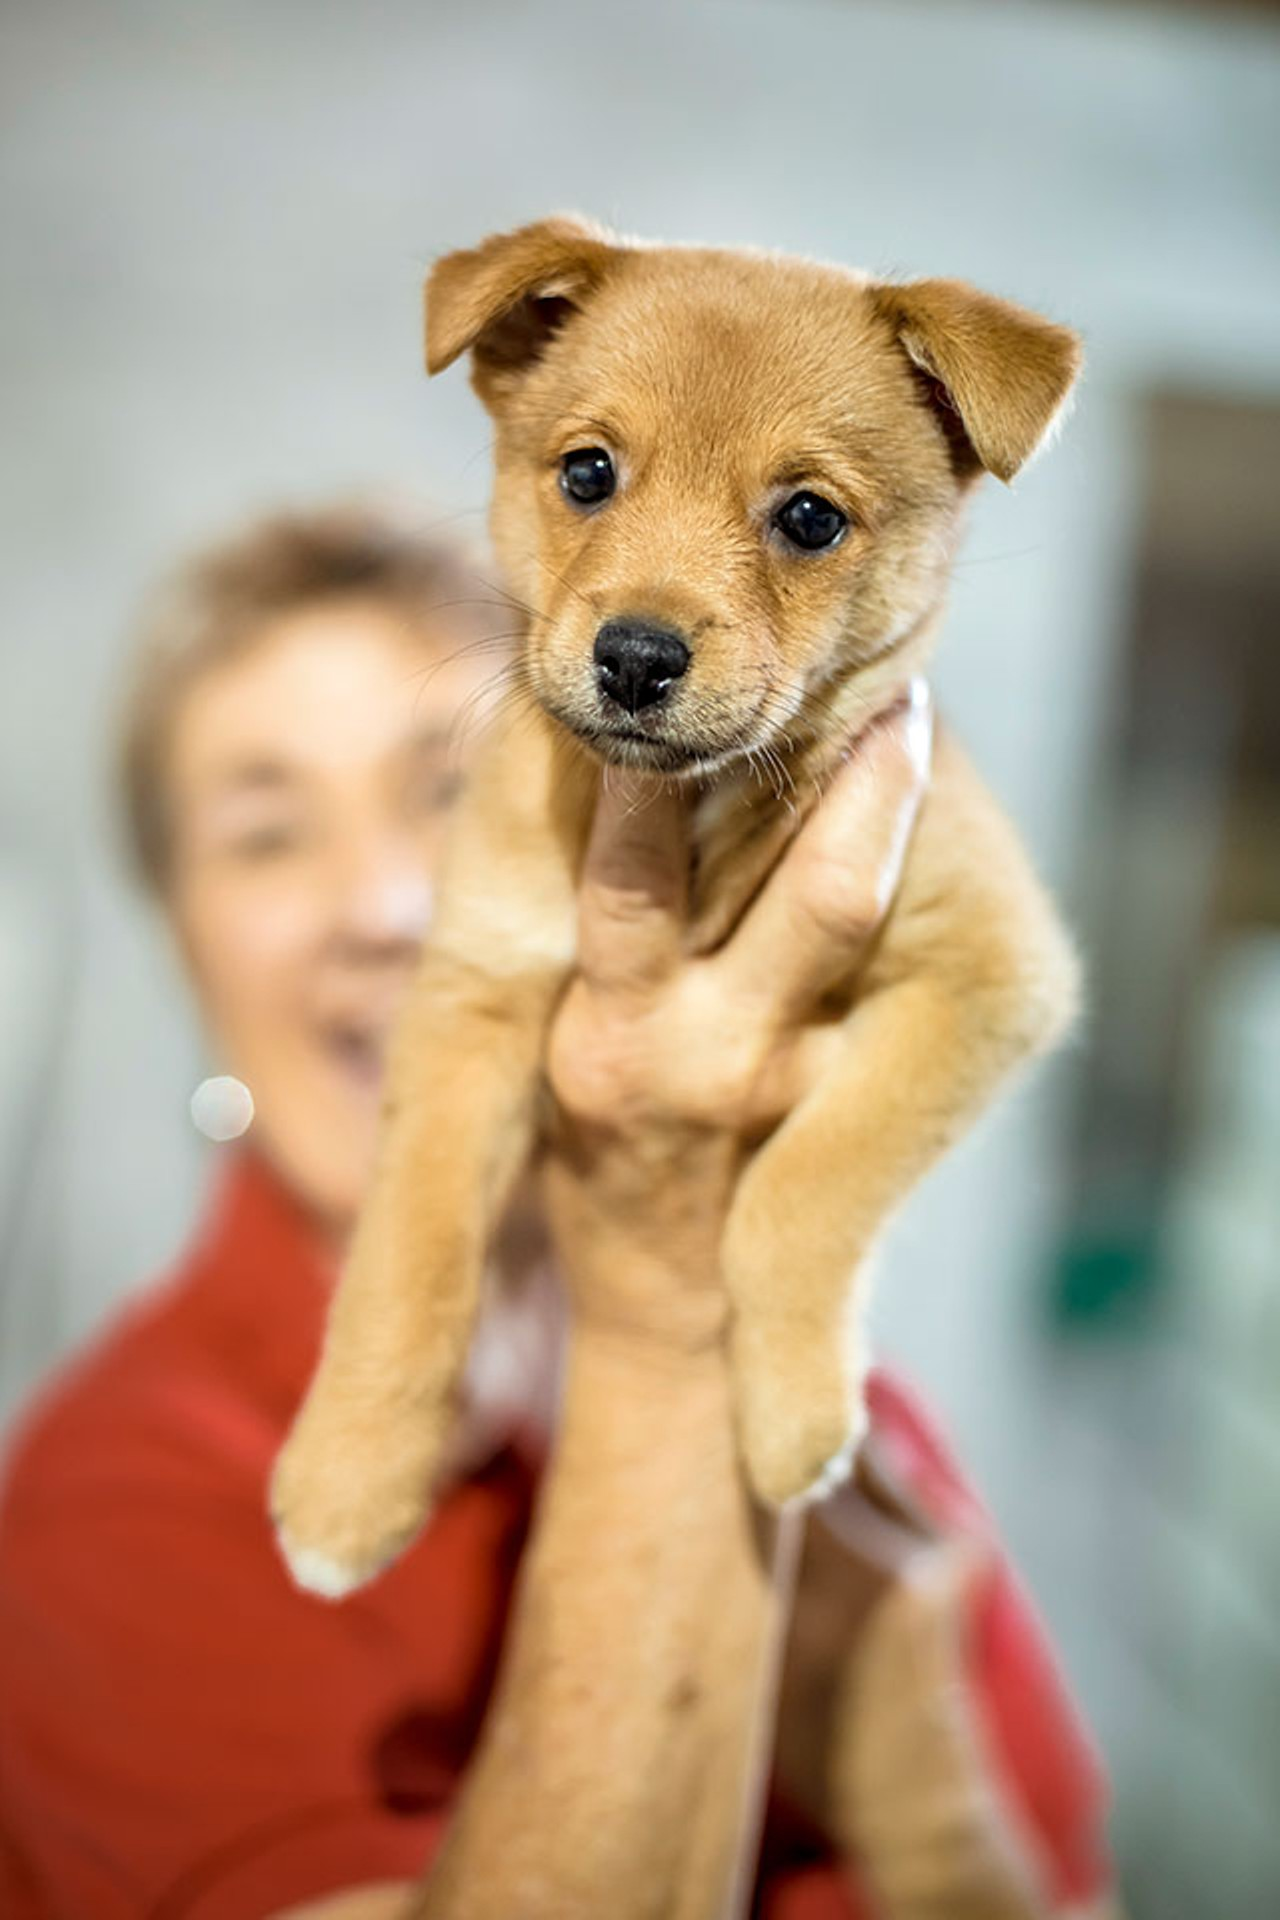 Pet Rescue by Judy erects new million dollar animal shelter in